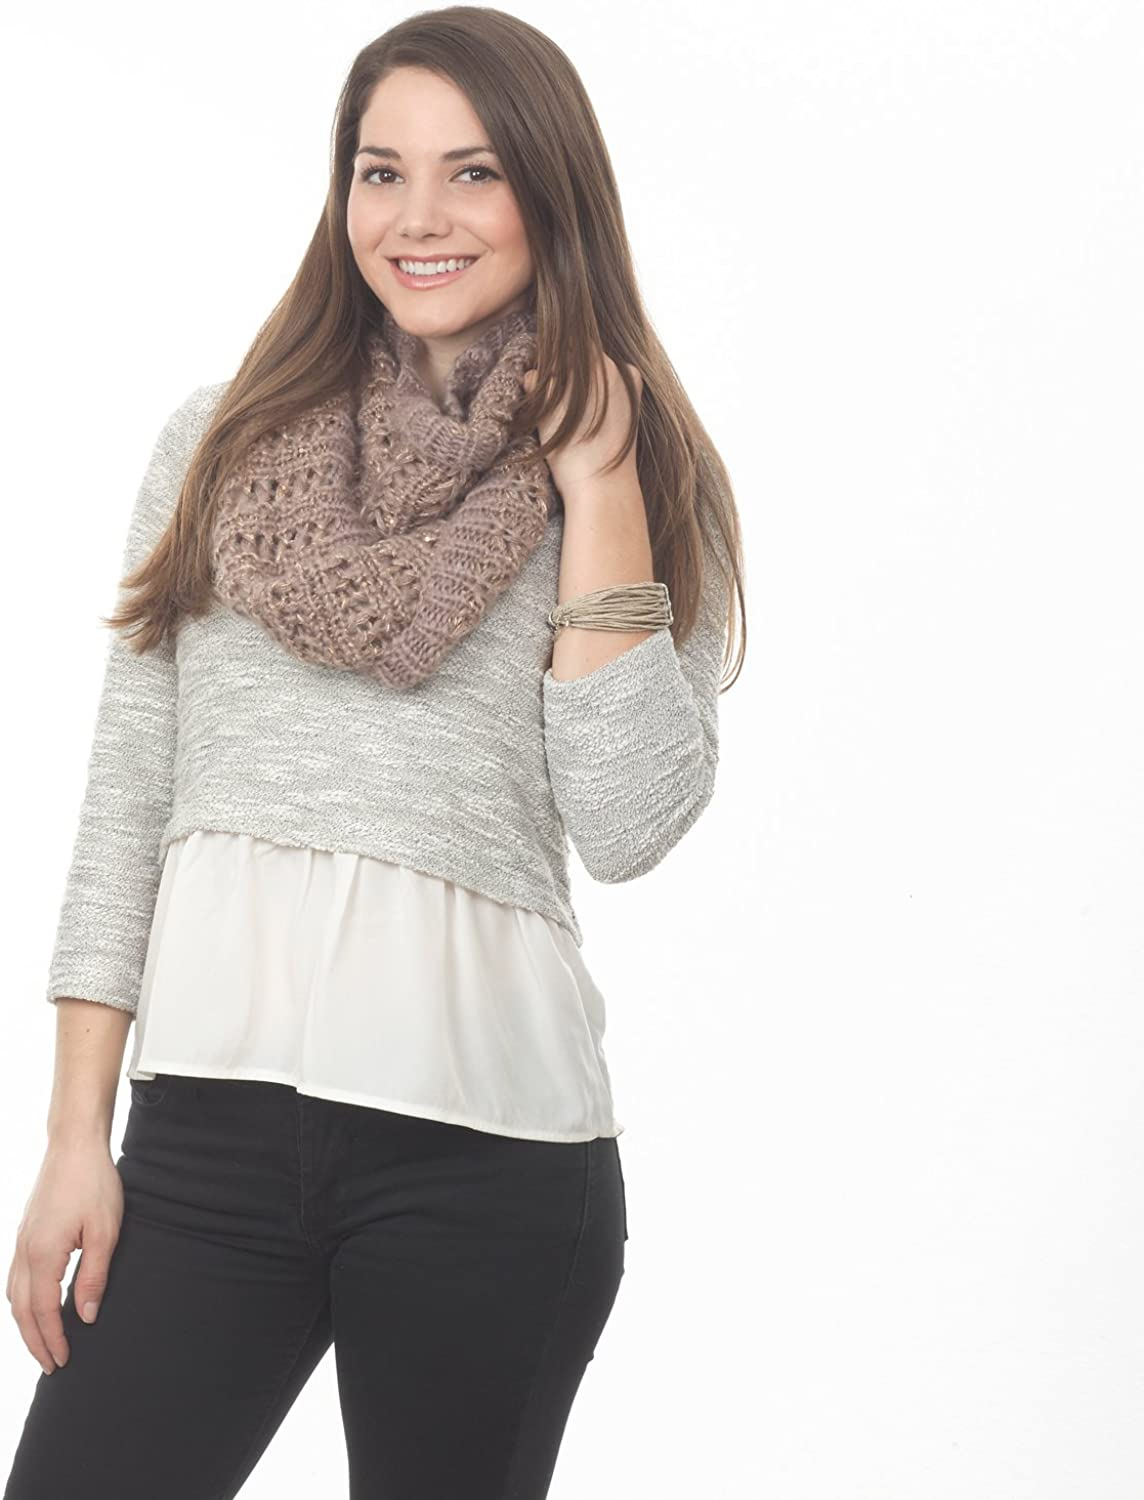 Saro Lifestyle Taupe Knitted Infinity Scarf  11 x20 , 100% acrylic